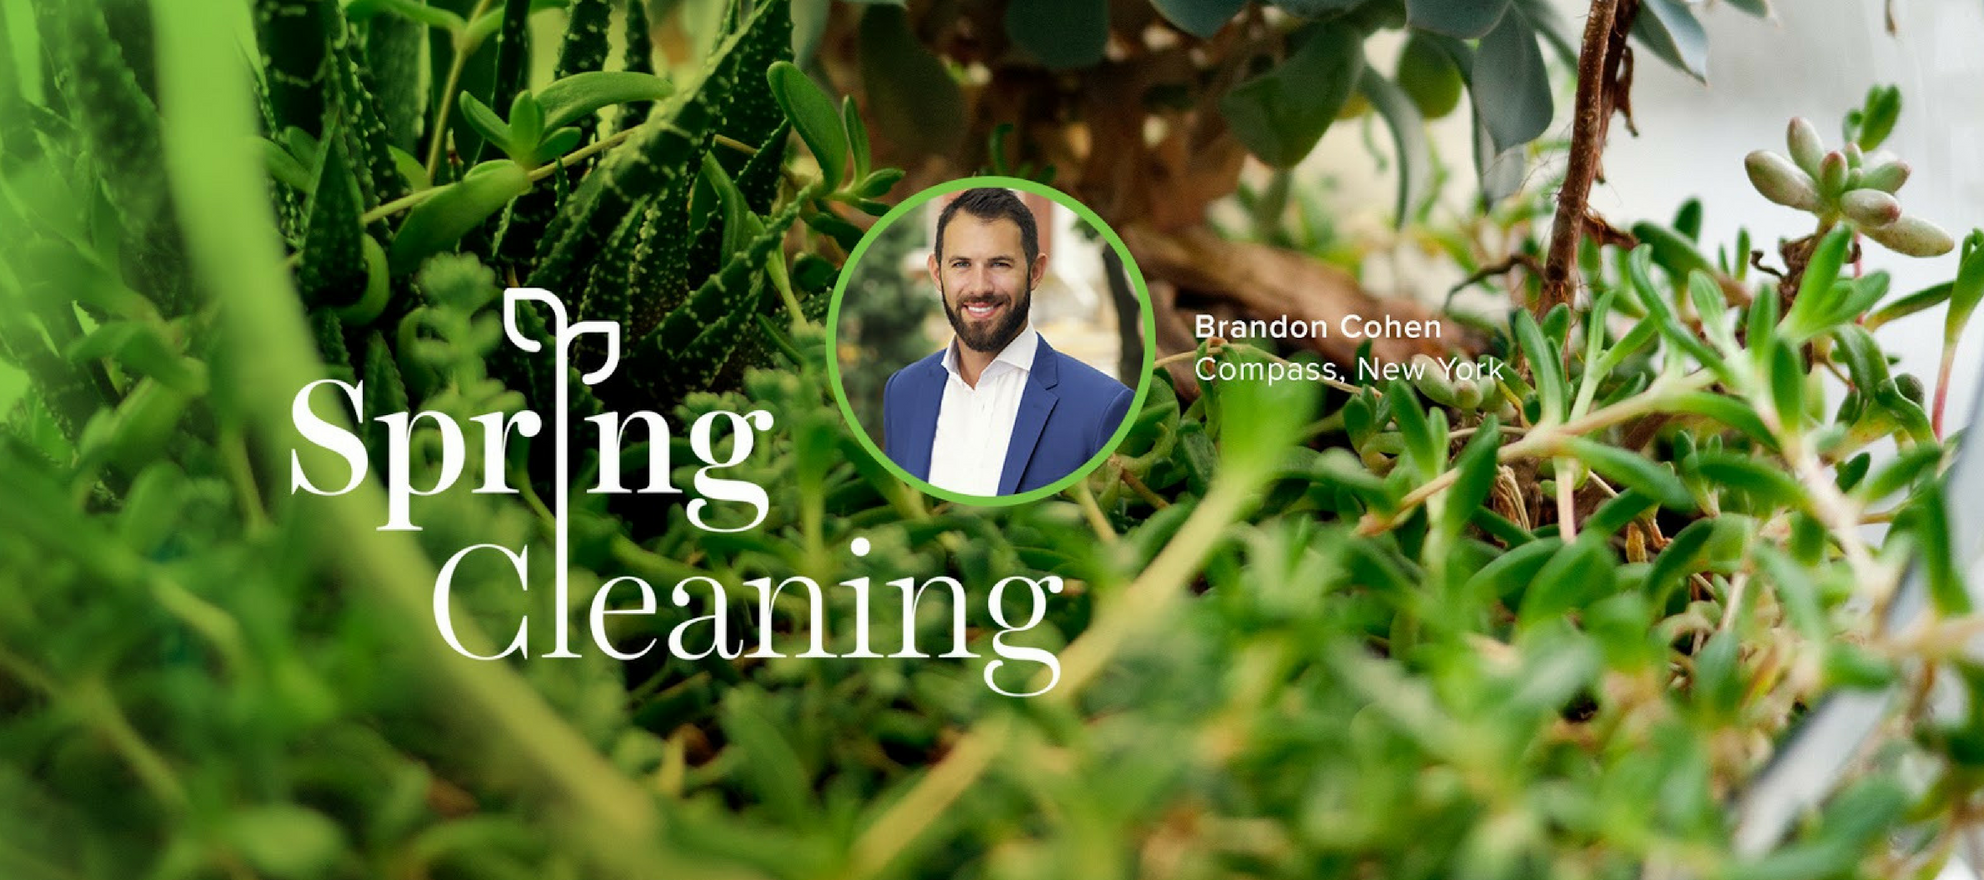 Spring cleaning, Spring Forward, Brandon Cohen